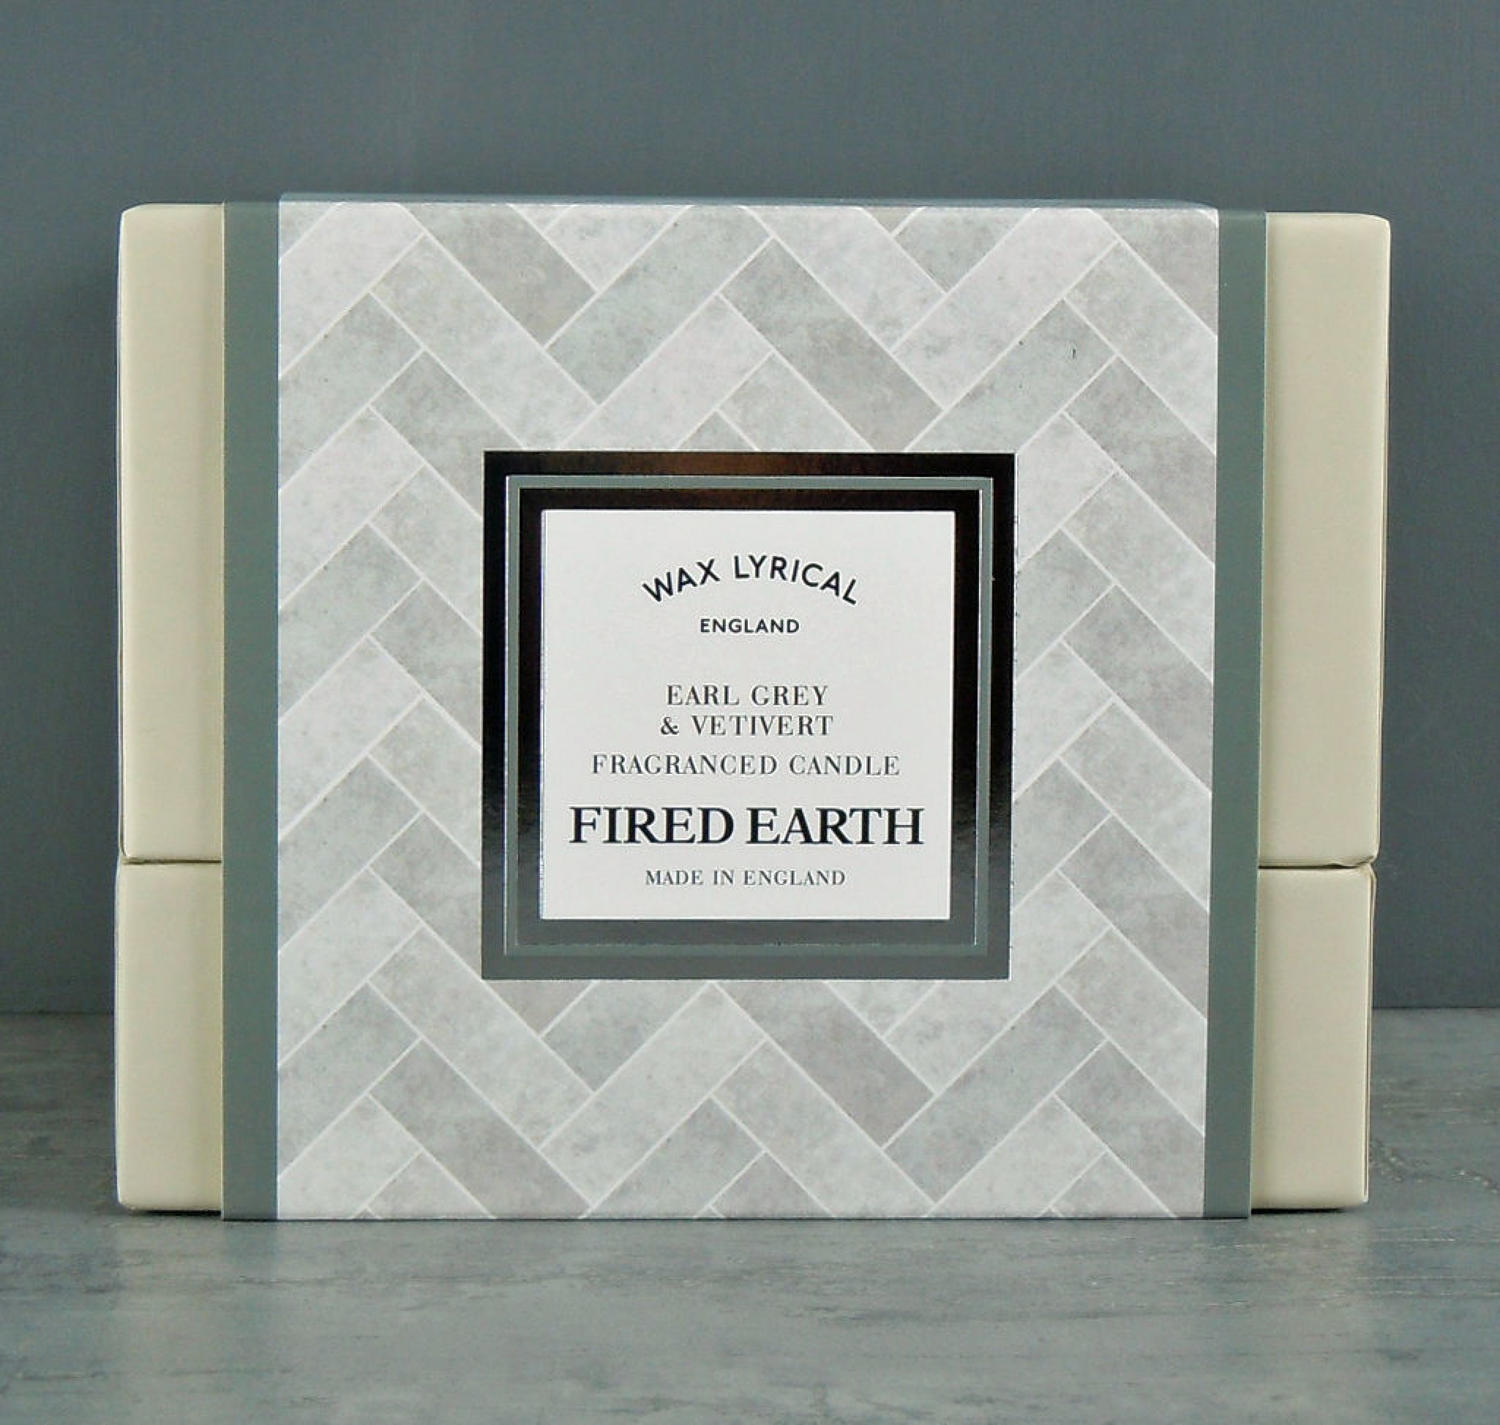 Wax Lyrical Fired Earth Earl Grey & Vetivert Ceramic twin wick Candle